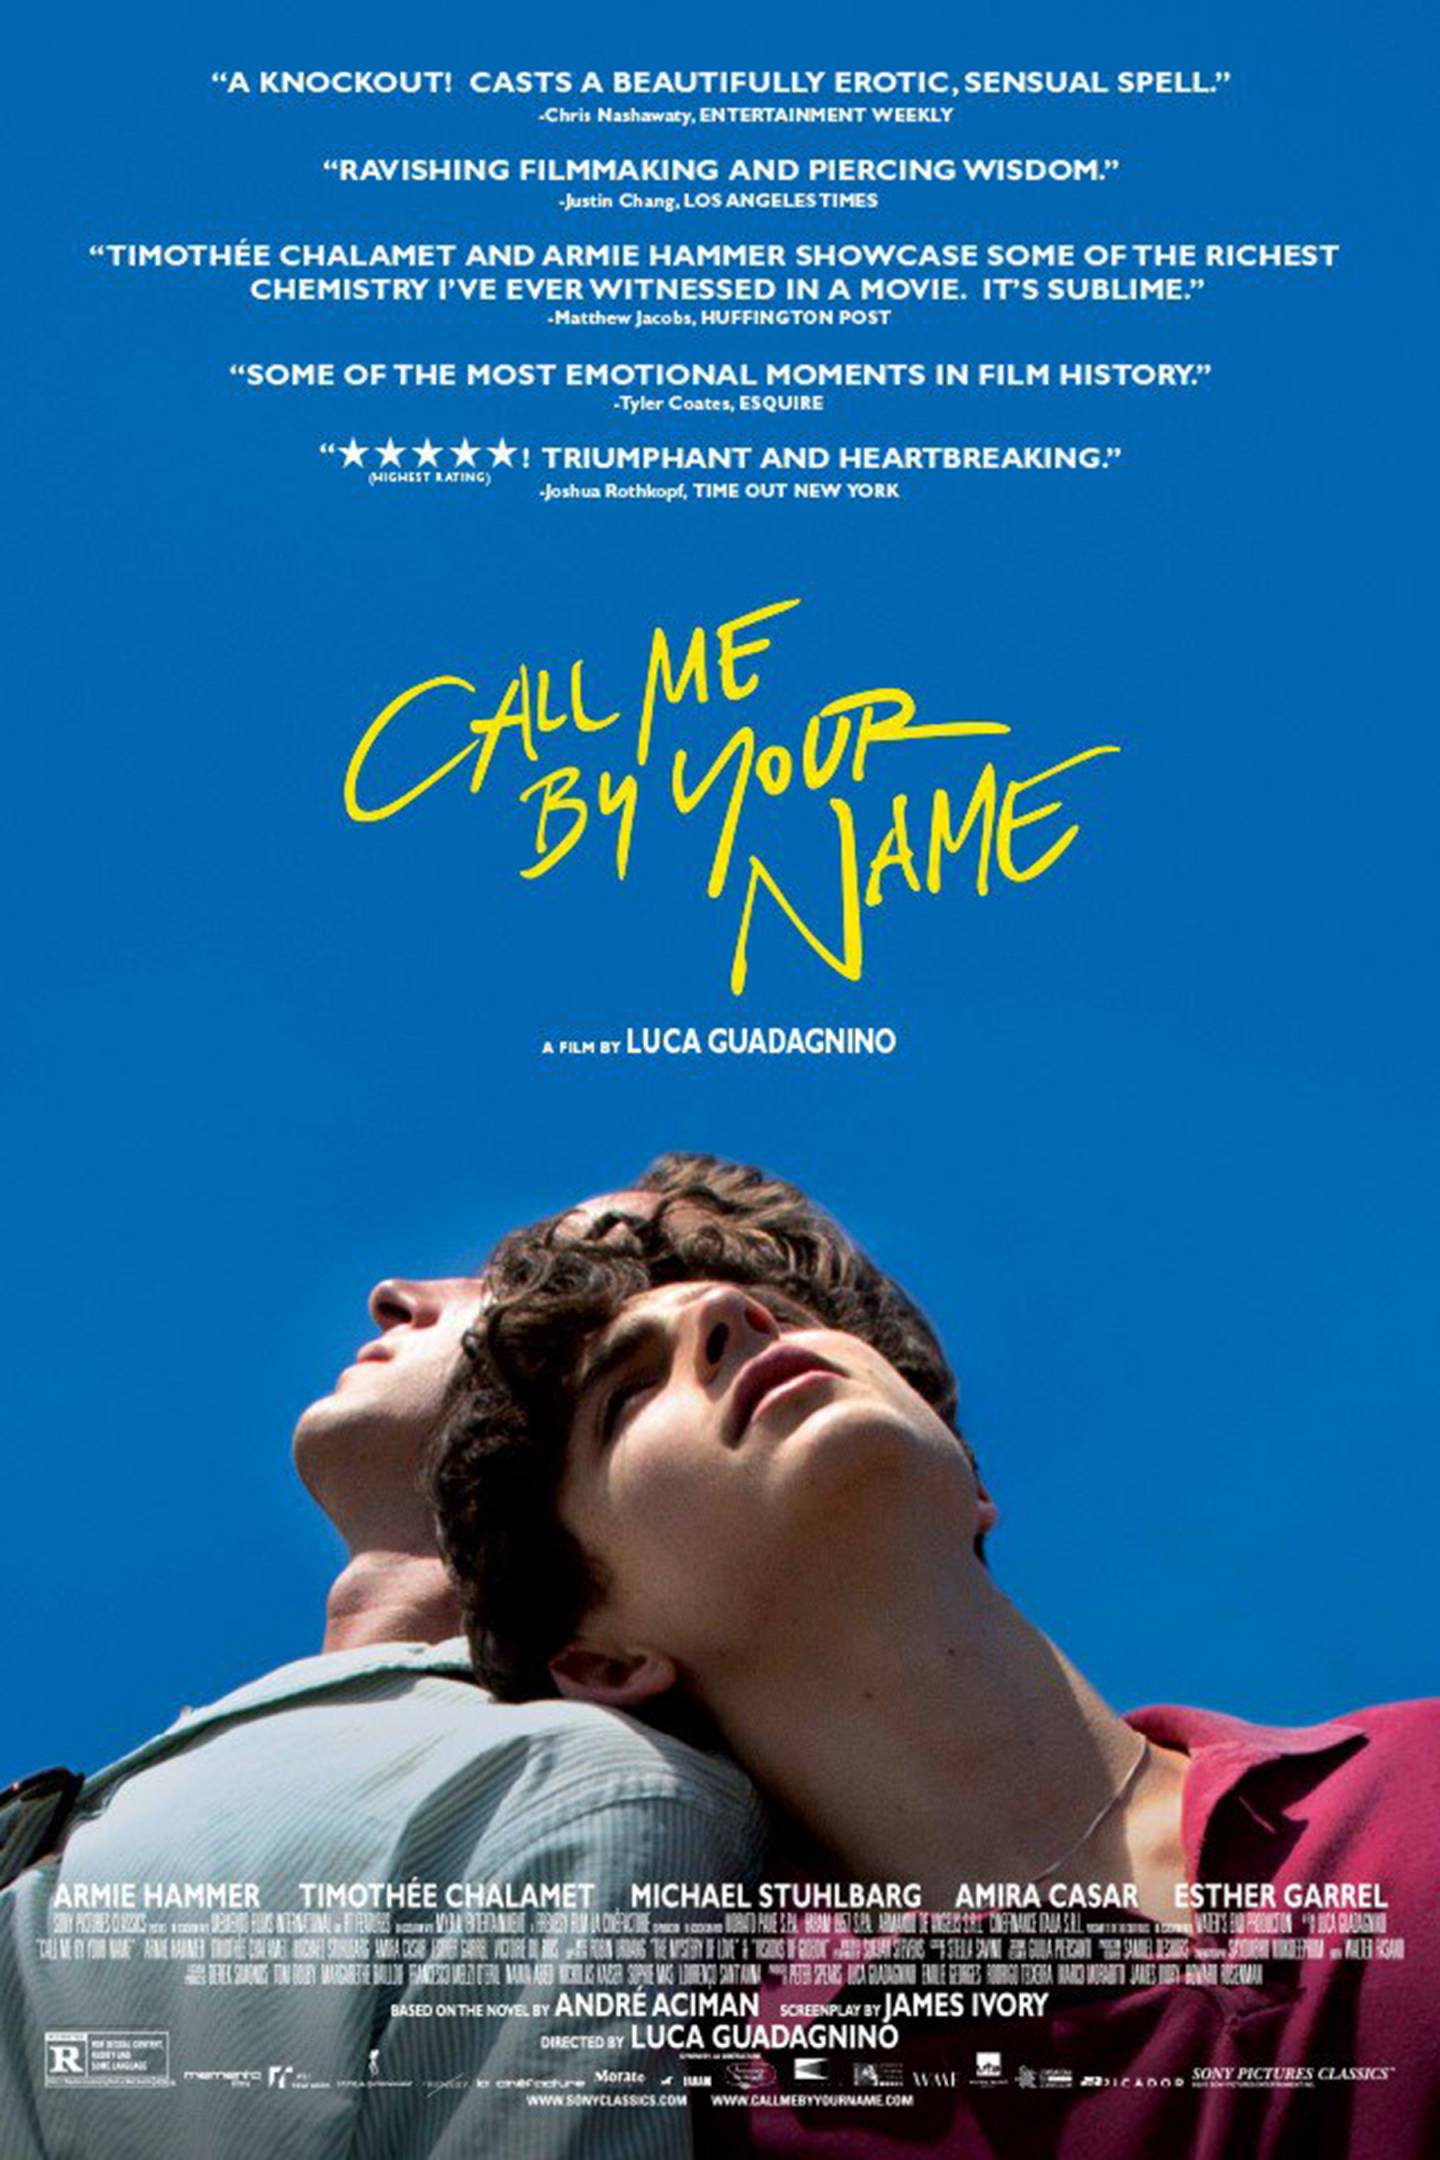 Lindsay Film Review | Call Me By Your Name: a Tale of Inimitable Love Leaves its Mark